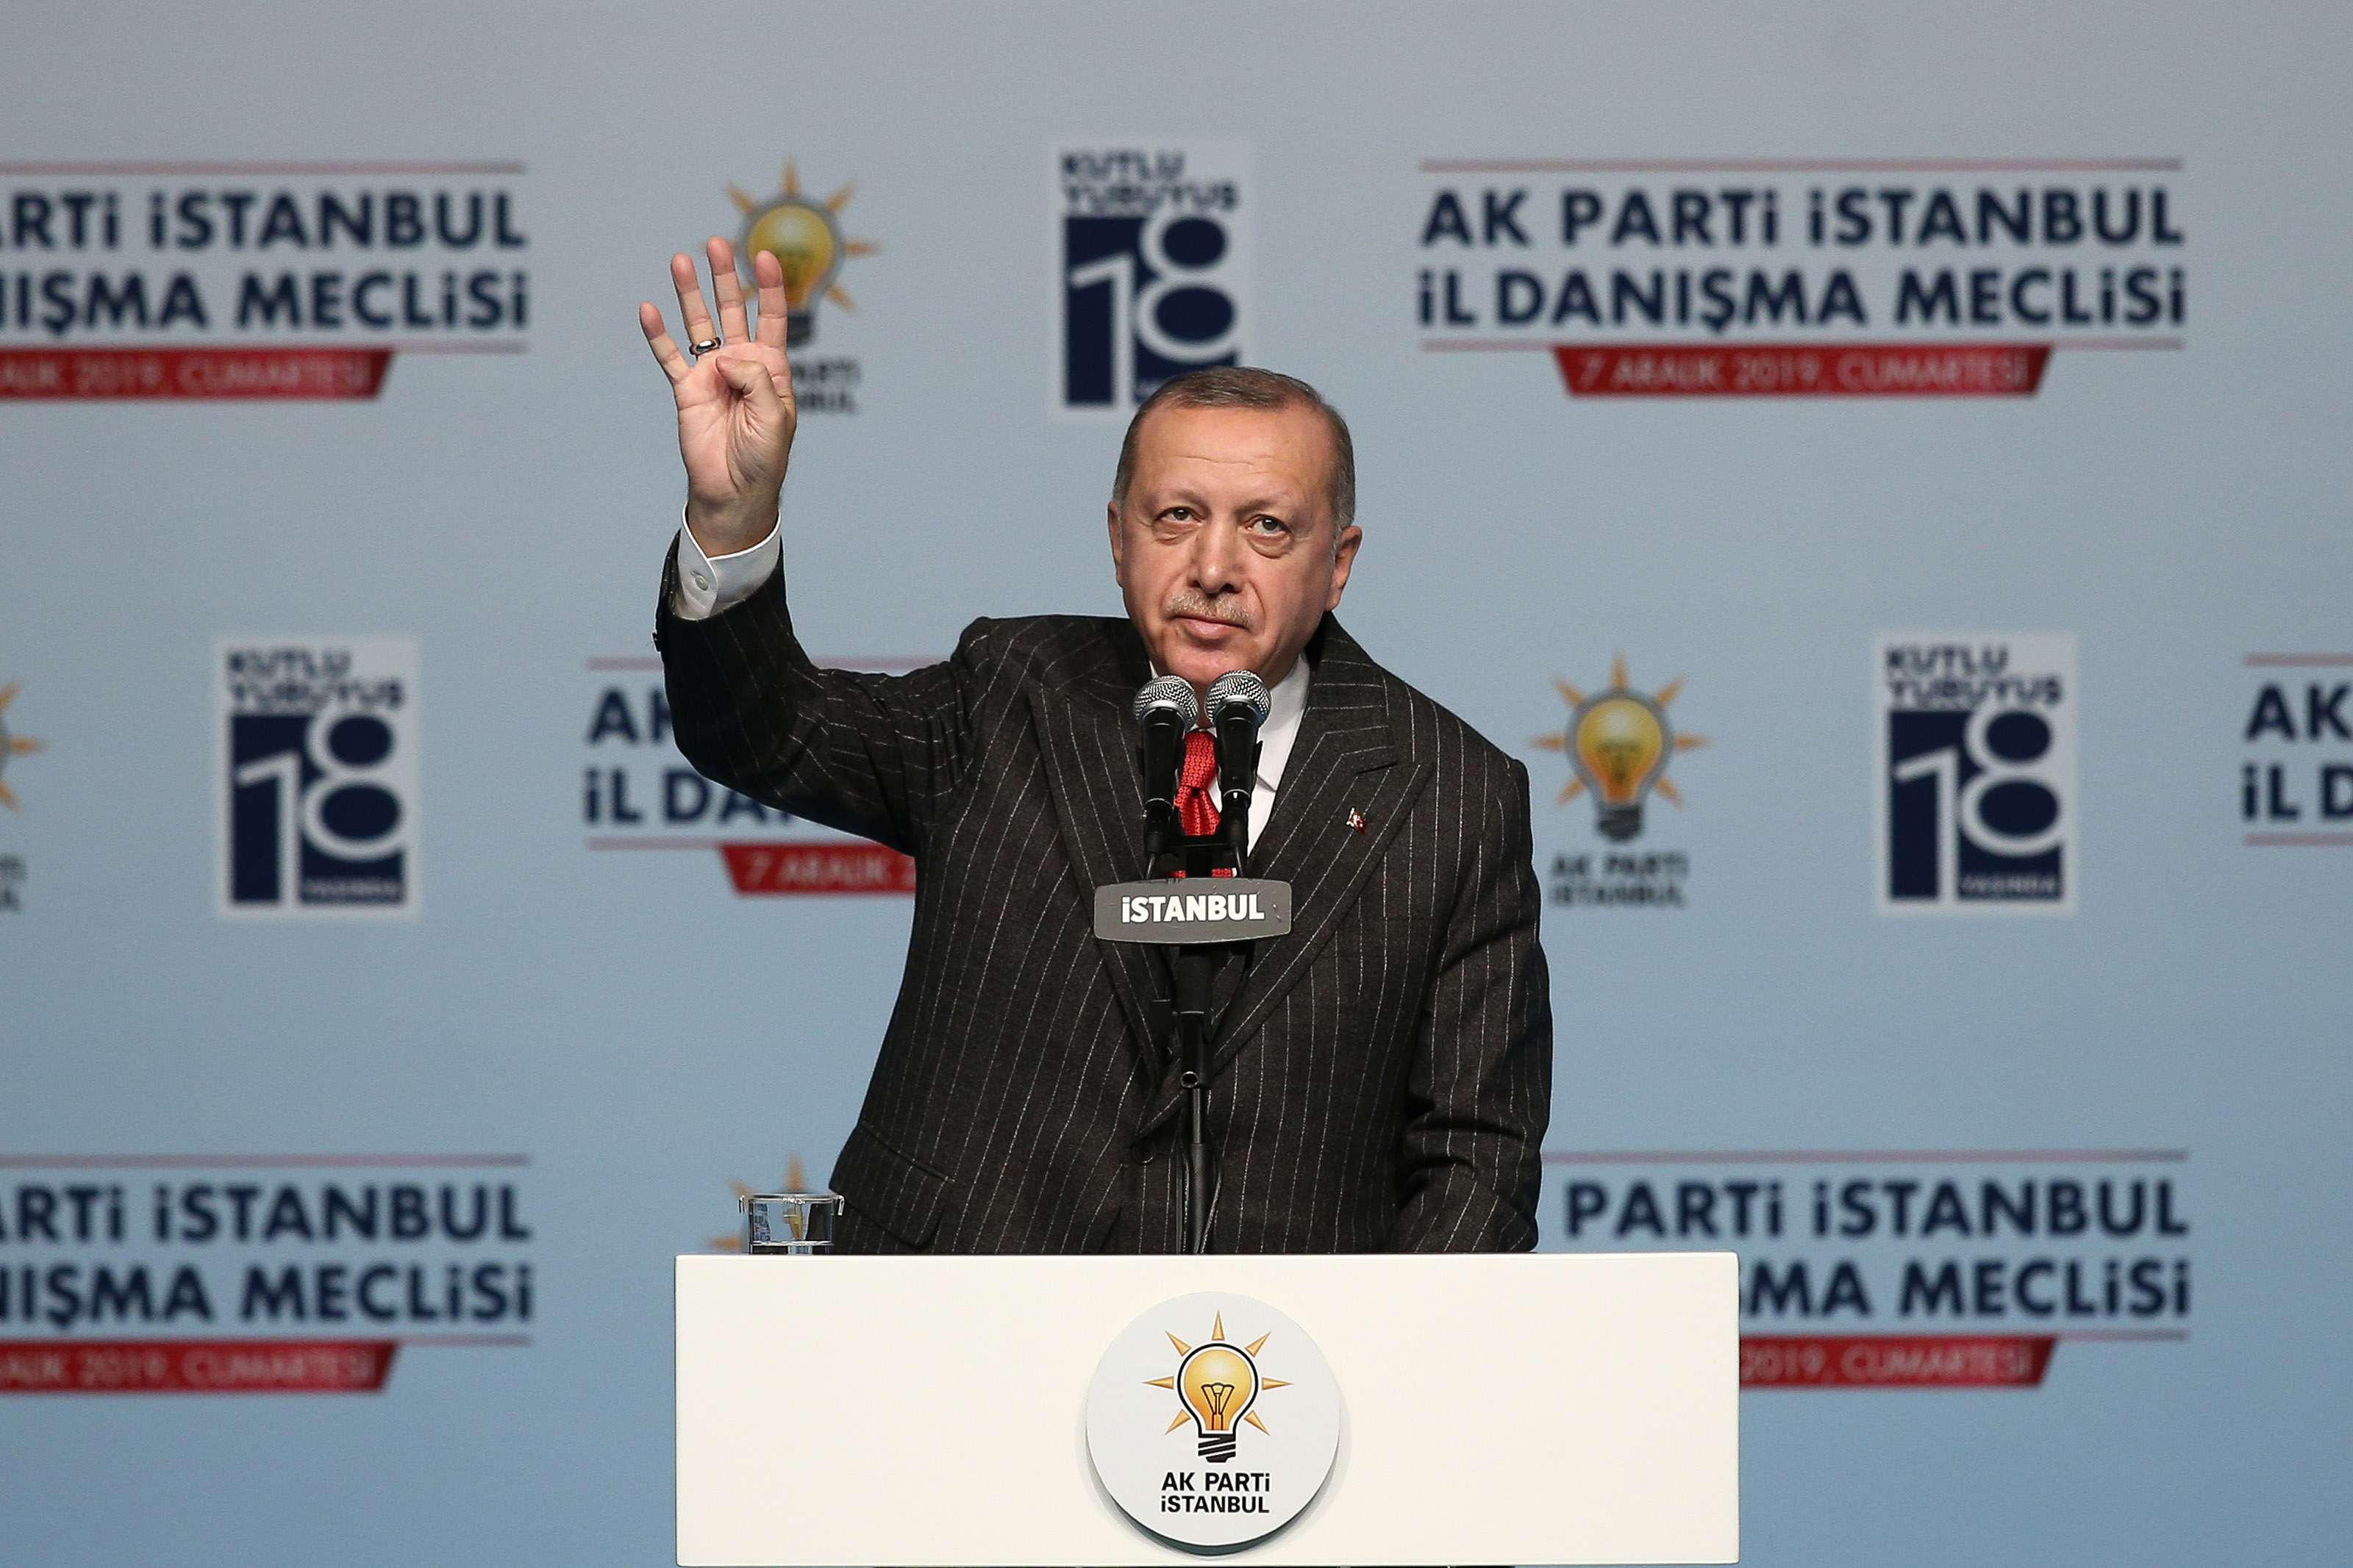 President Erdoğan delivered a speech at the Provincial Advisory Council meeting of party  in Istanbul